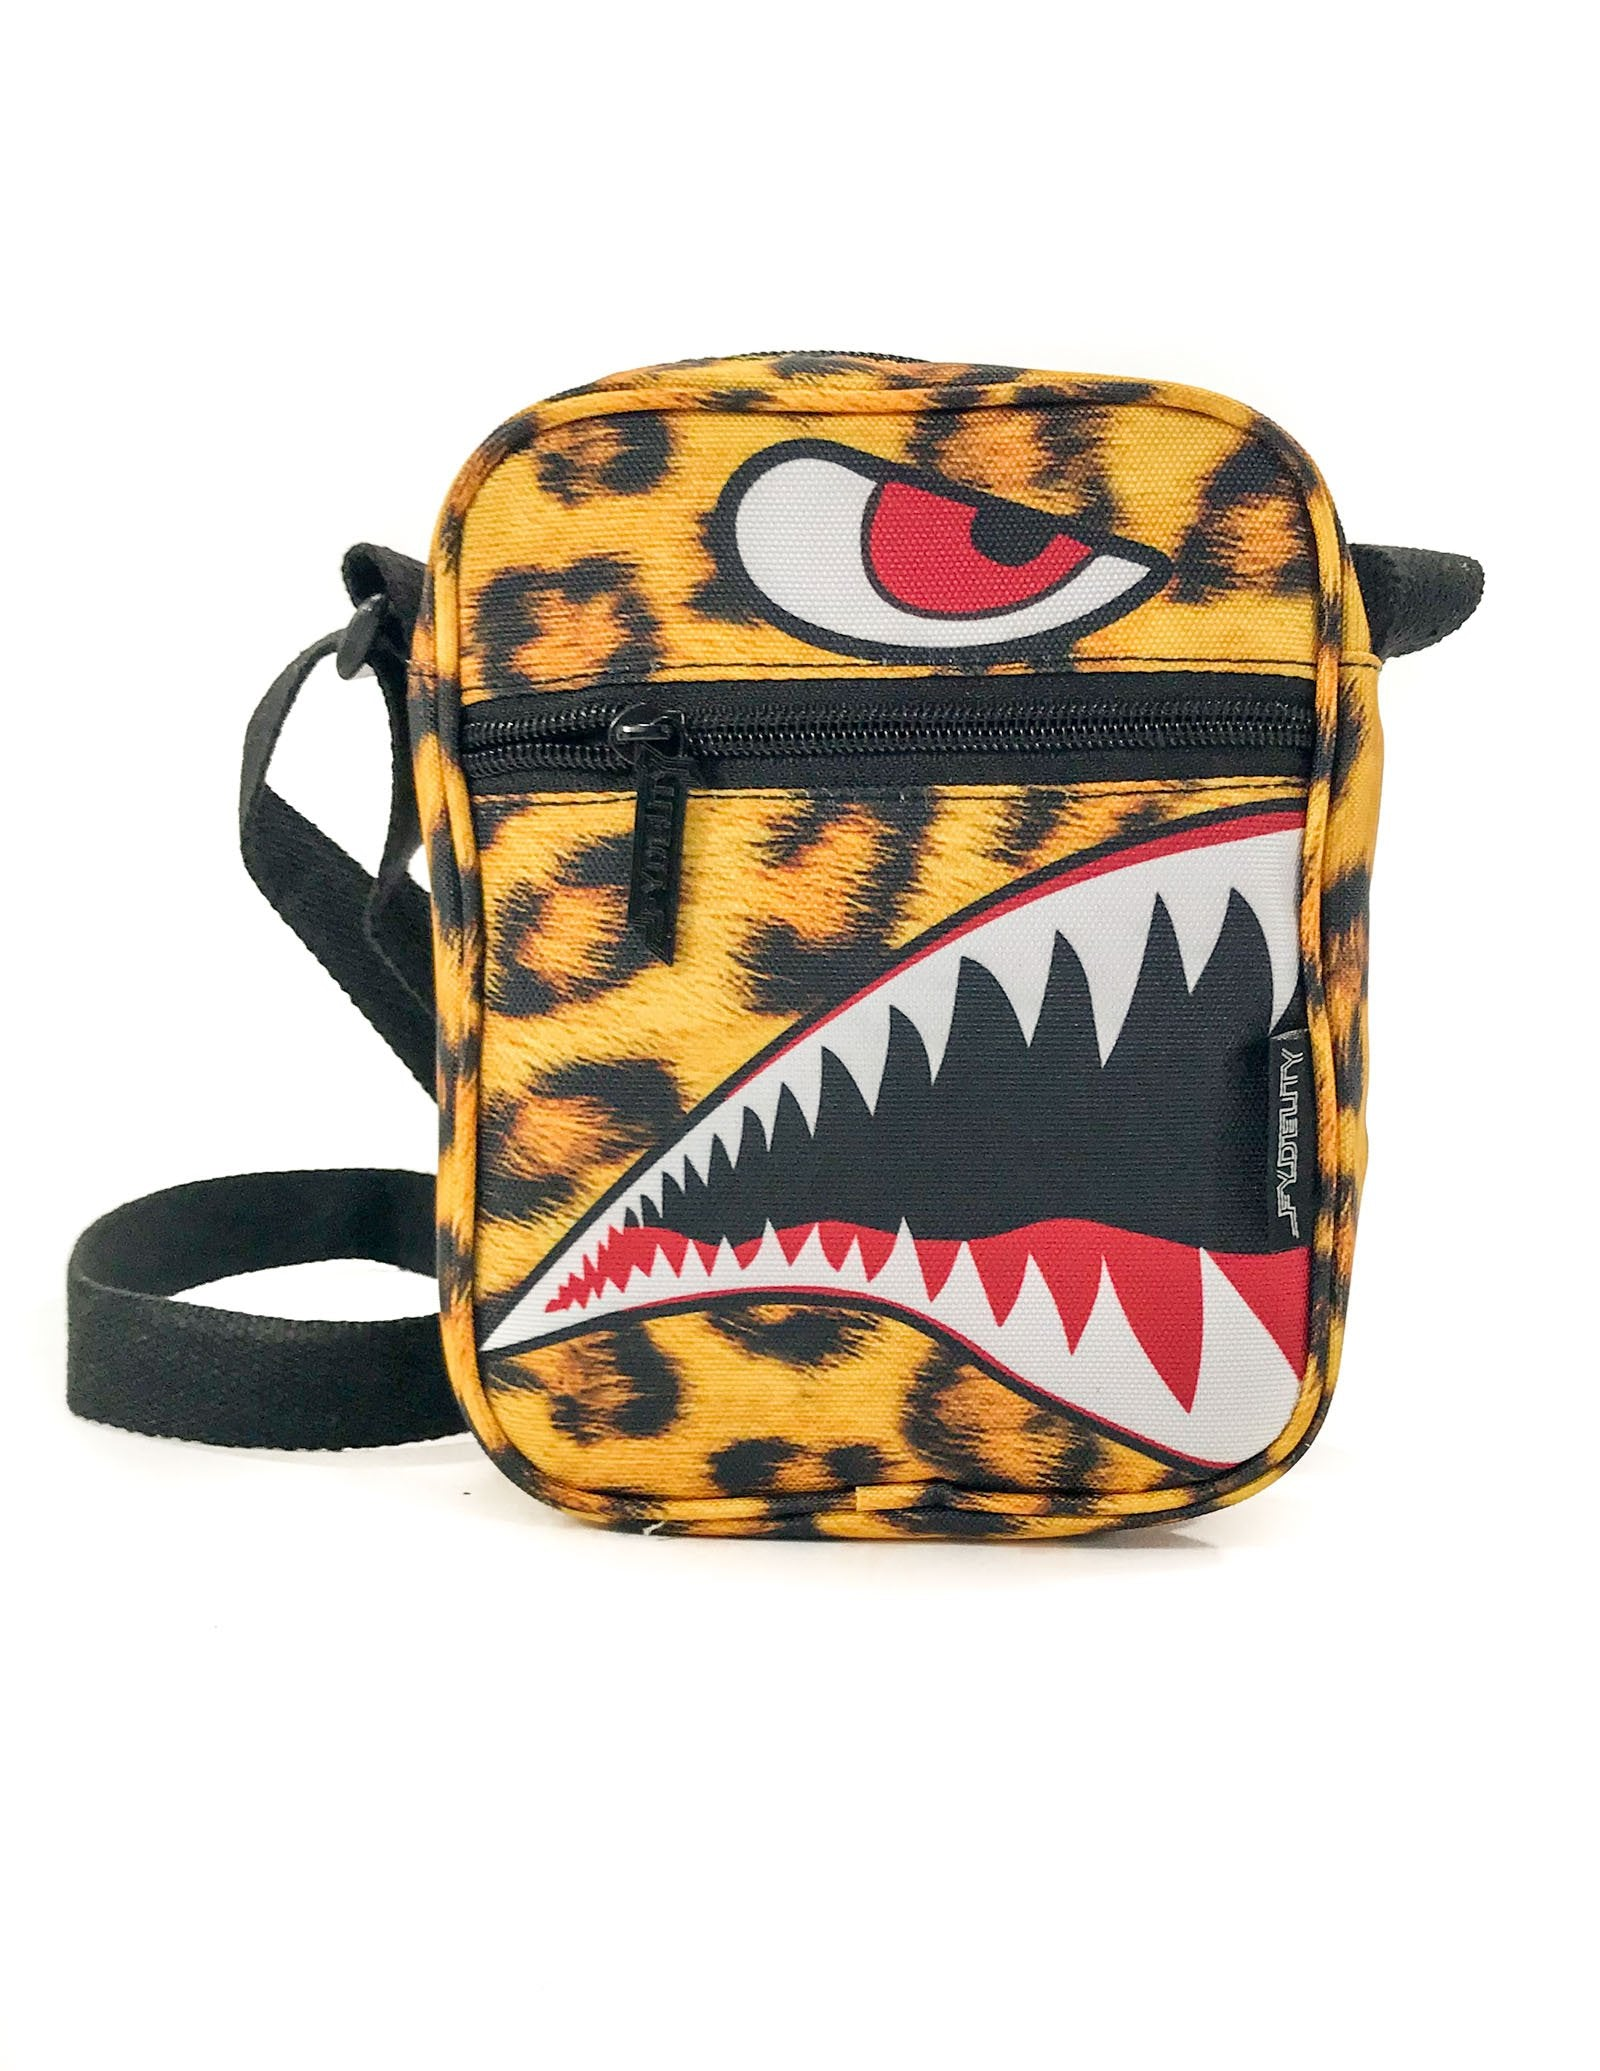 88363: FYDELITY- Sidekick Brick Bag: FLYING TIGER Cheetah